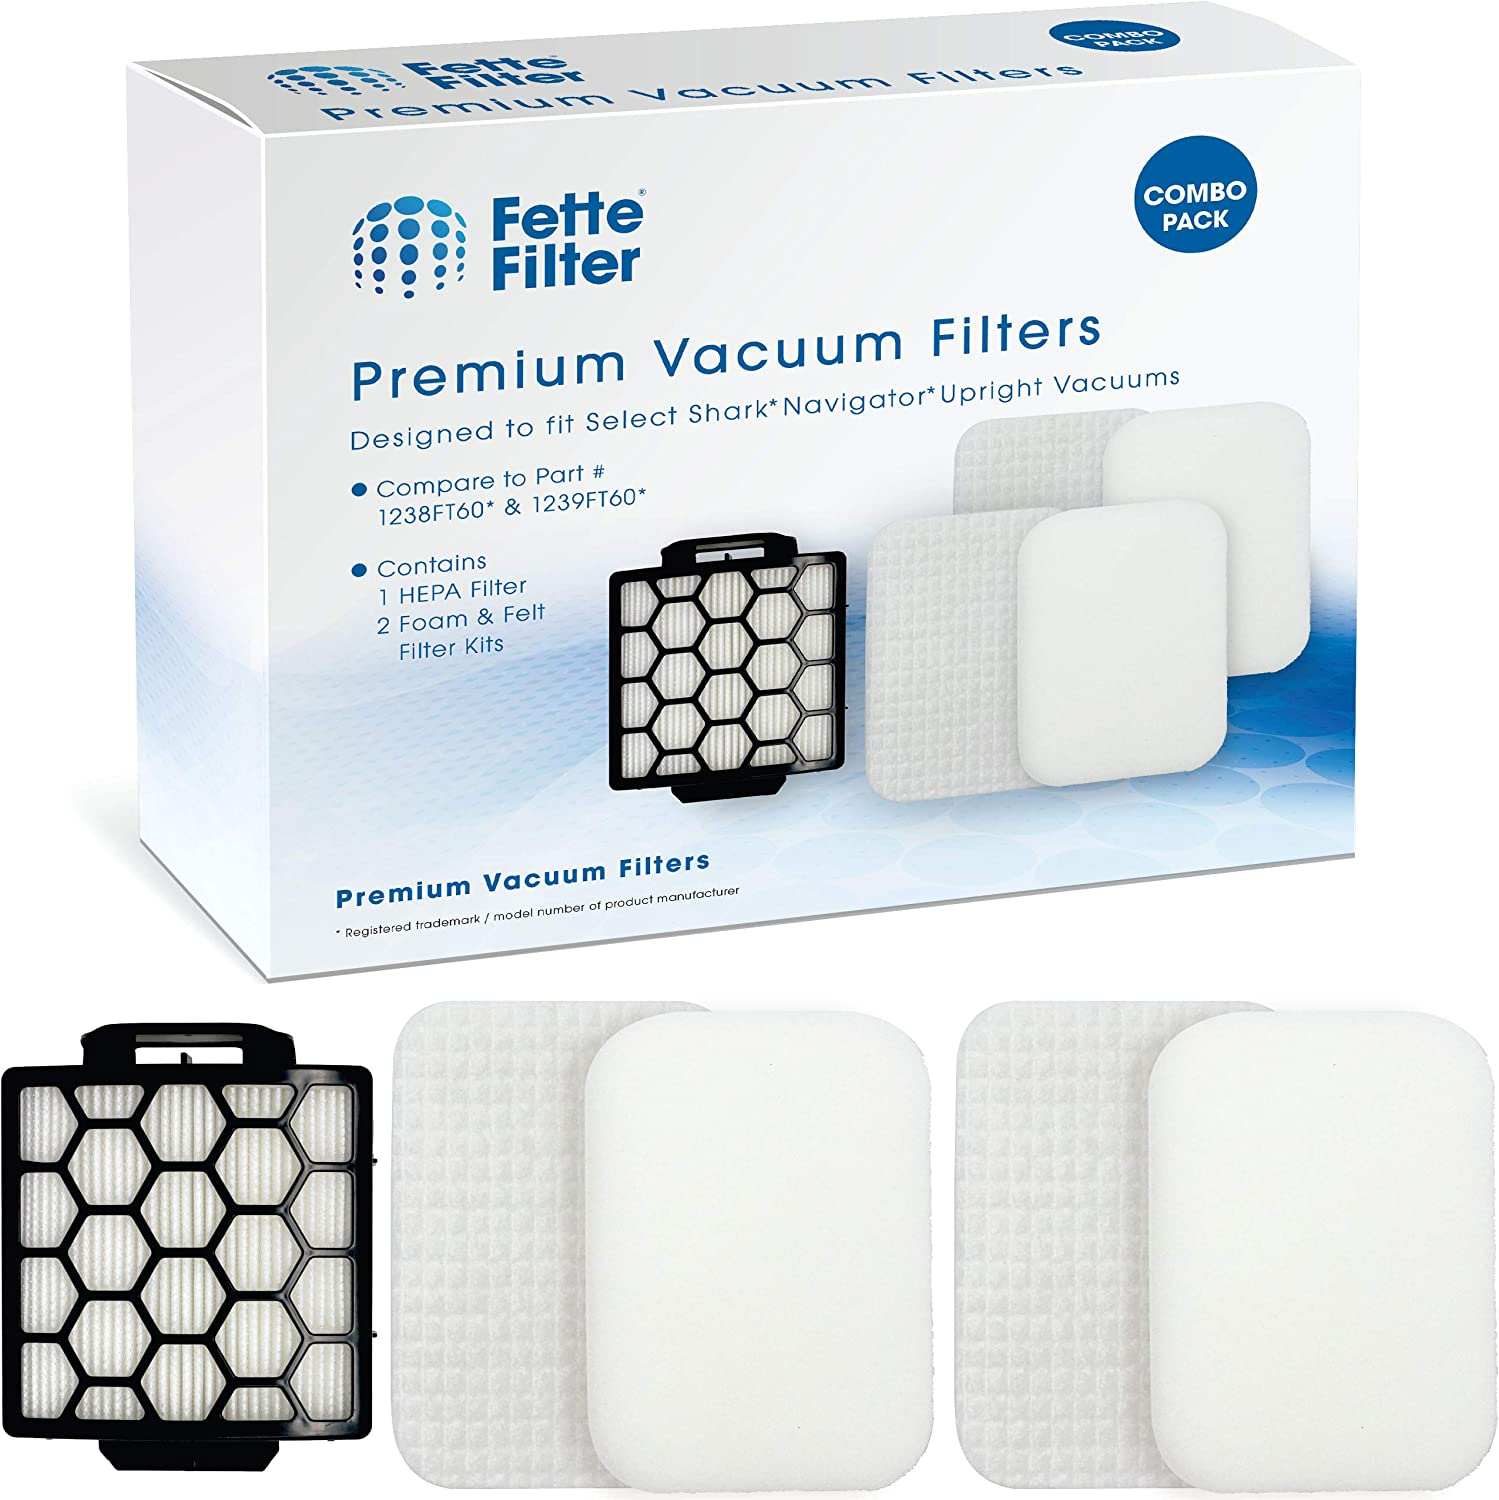 Fette Filter 1 HEPA & 2 Foam Filters for Shark Navigator Pet Plus NV150, NV251,NV255 and Zero-M Self-Cleaning Brushroll Pet Pro ZU62,ZU62C,ZU60 Upright Vacuum, Replacement Parts # 1238FT60 & 1239FT60